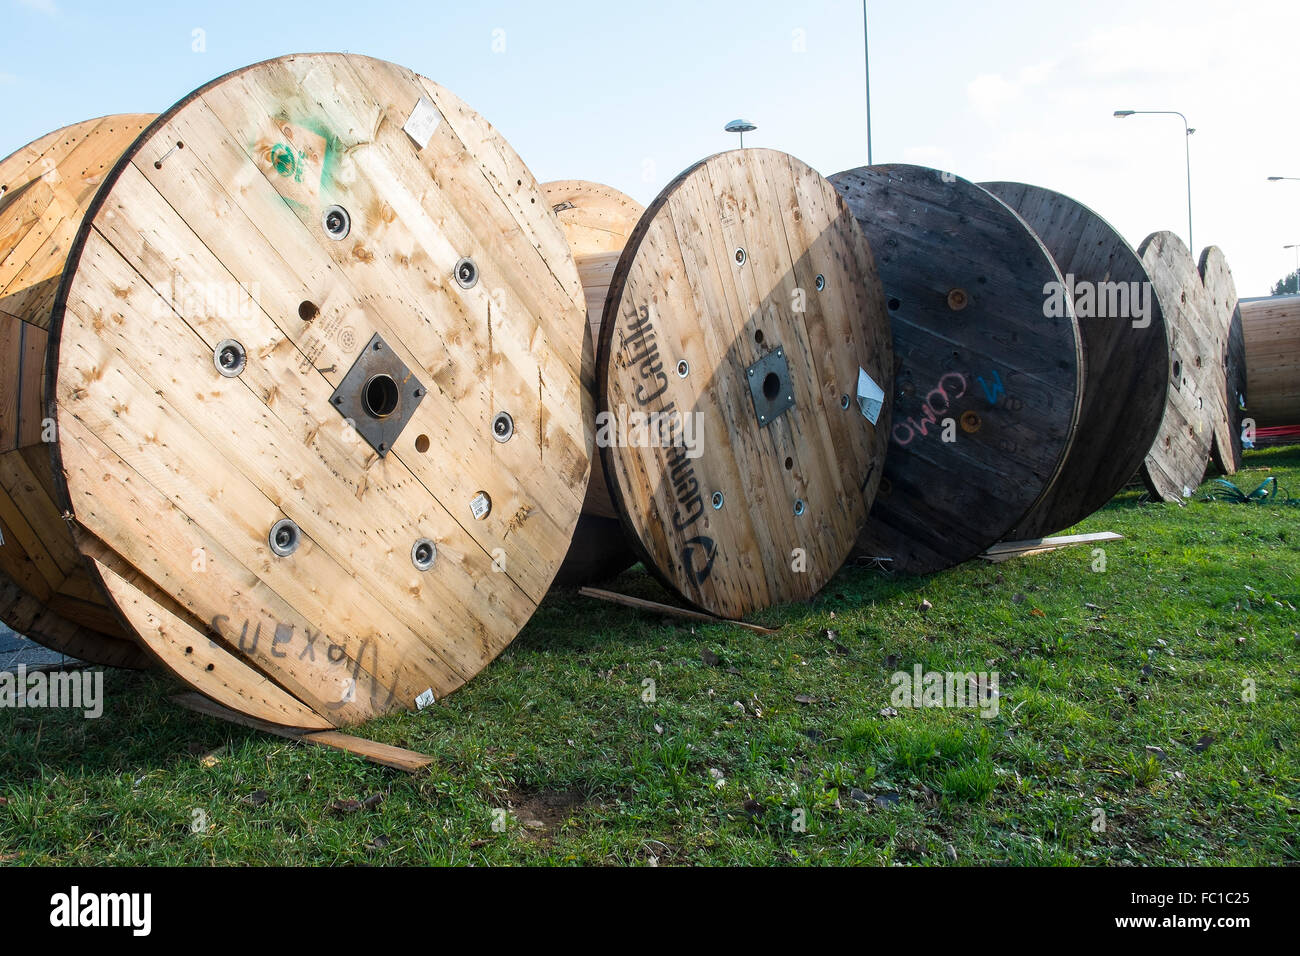 large wood spools for electric wire Stock Photo: 93459133 - Alamy